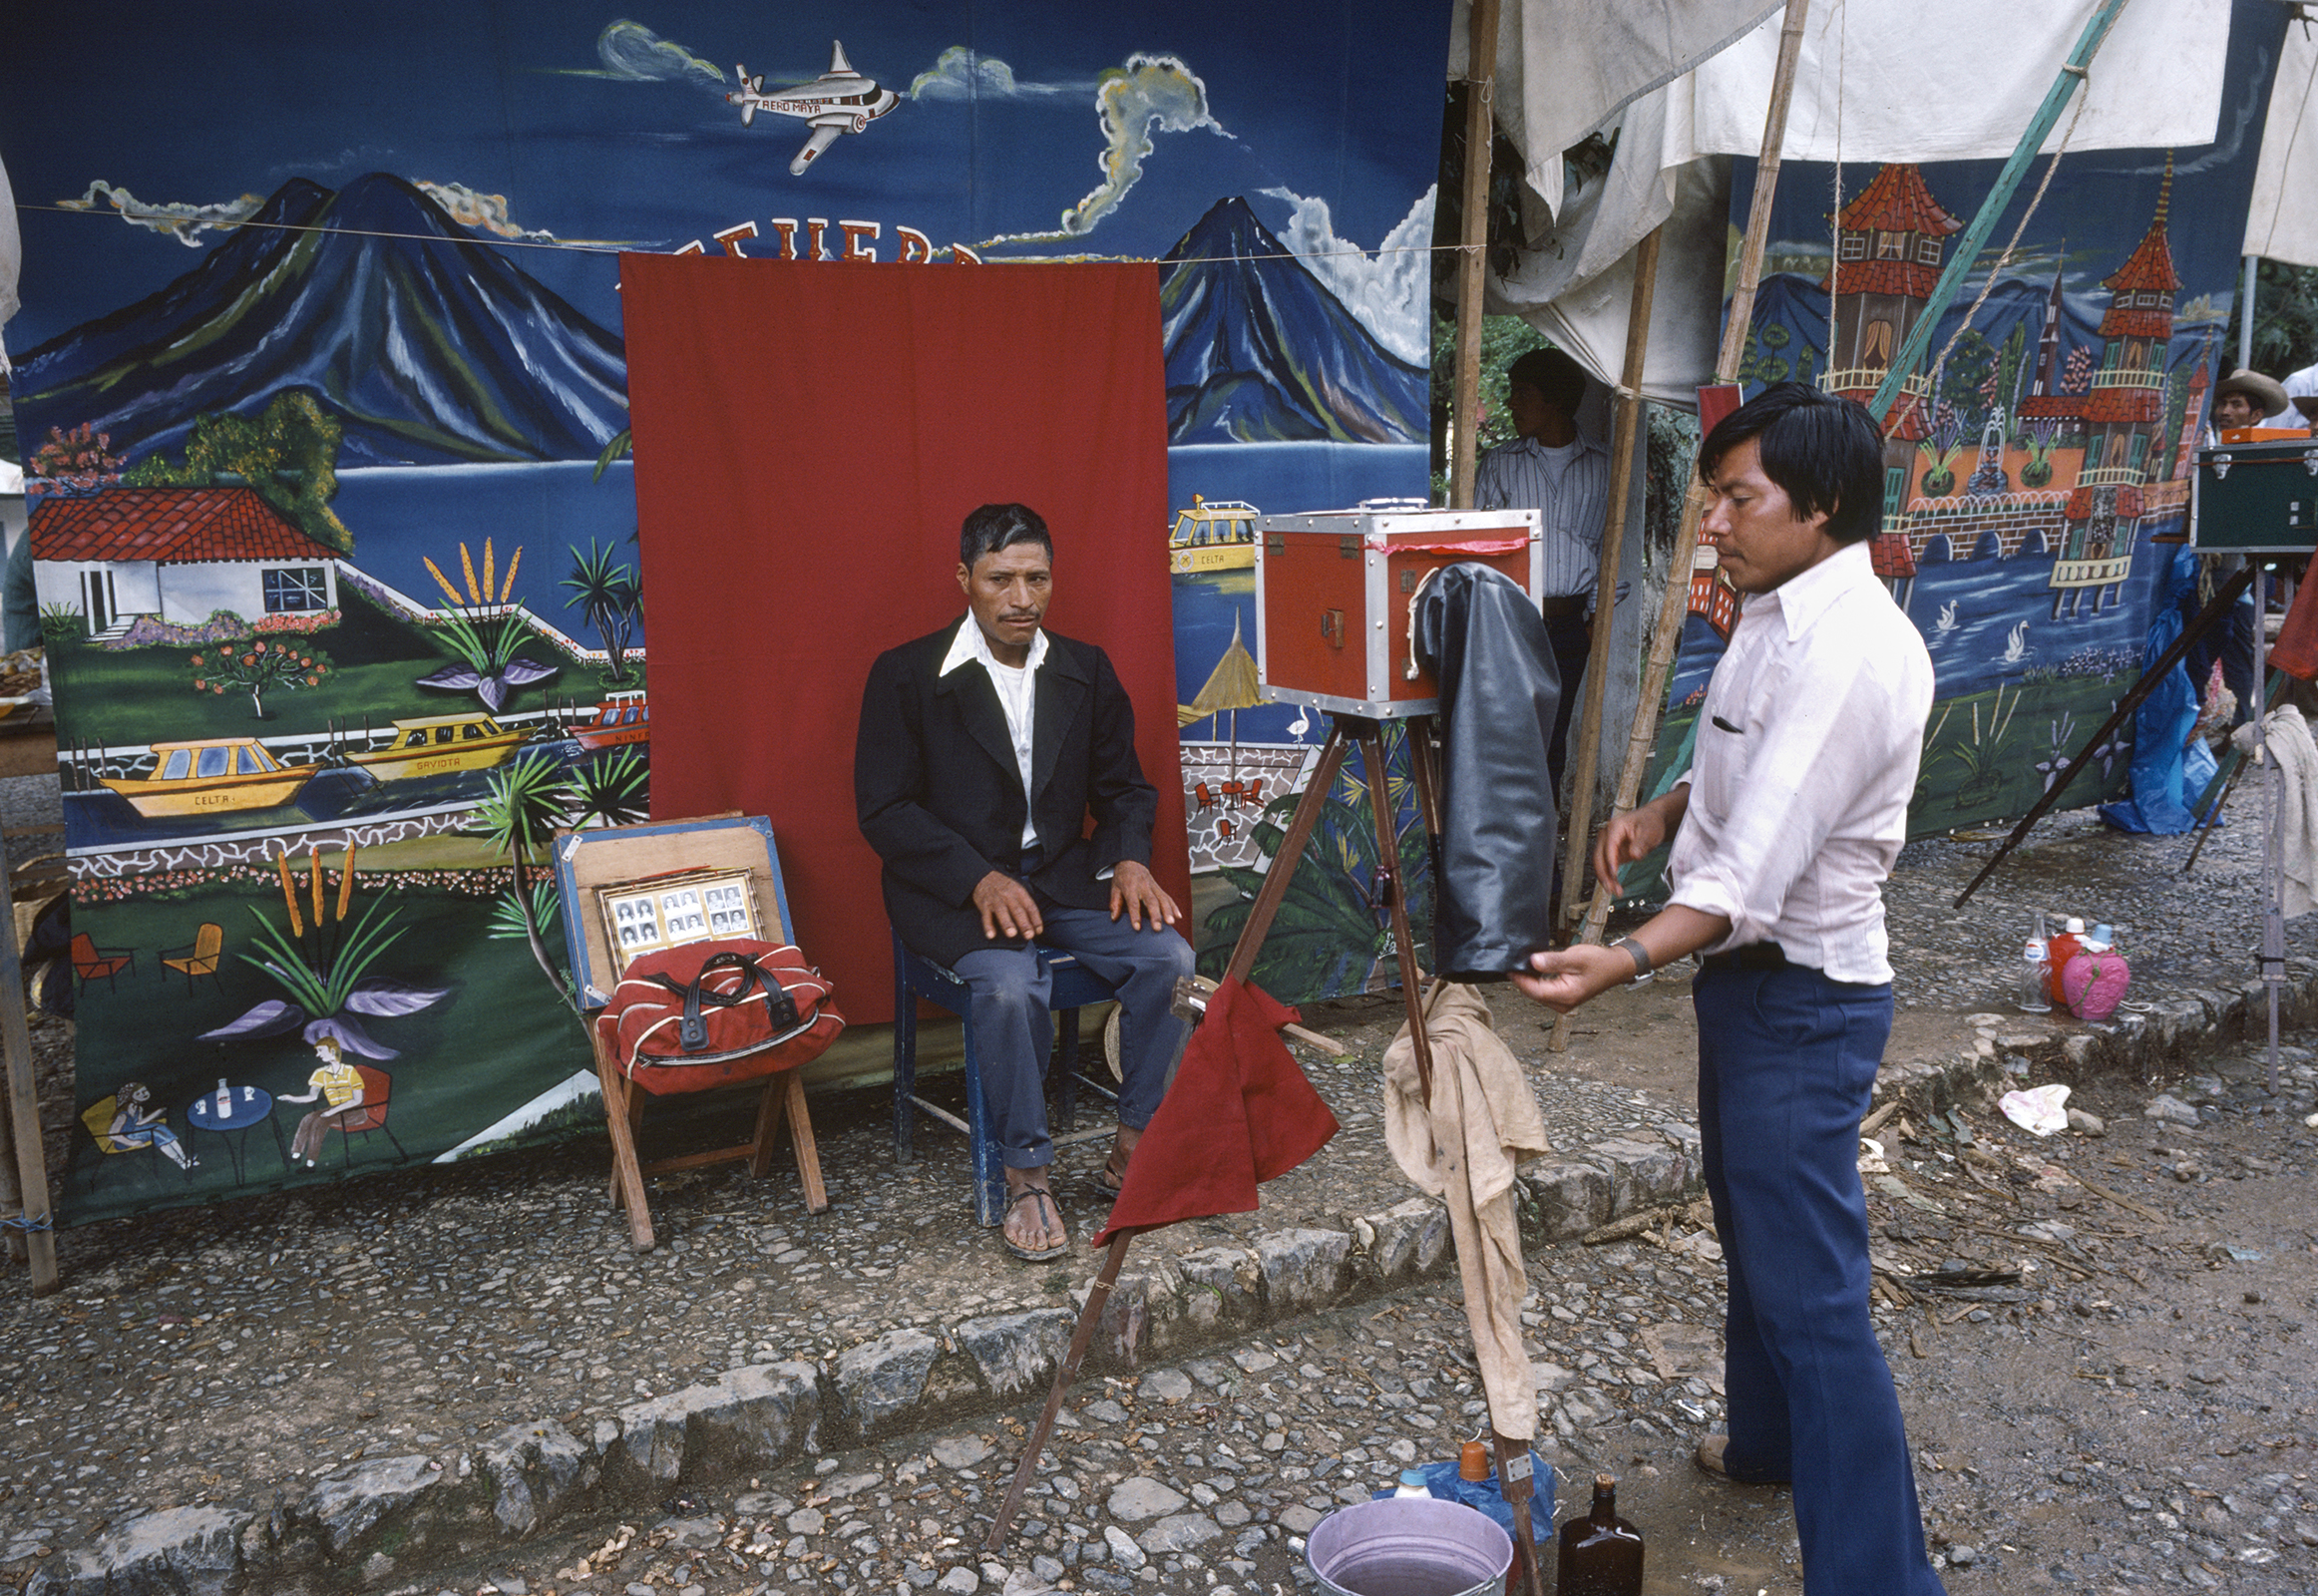 A local photographer prepares to take a picture in a rural town in Huehuetenango, Guatemala on September 1, 1982.